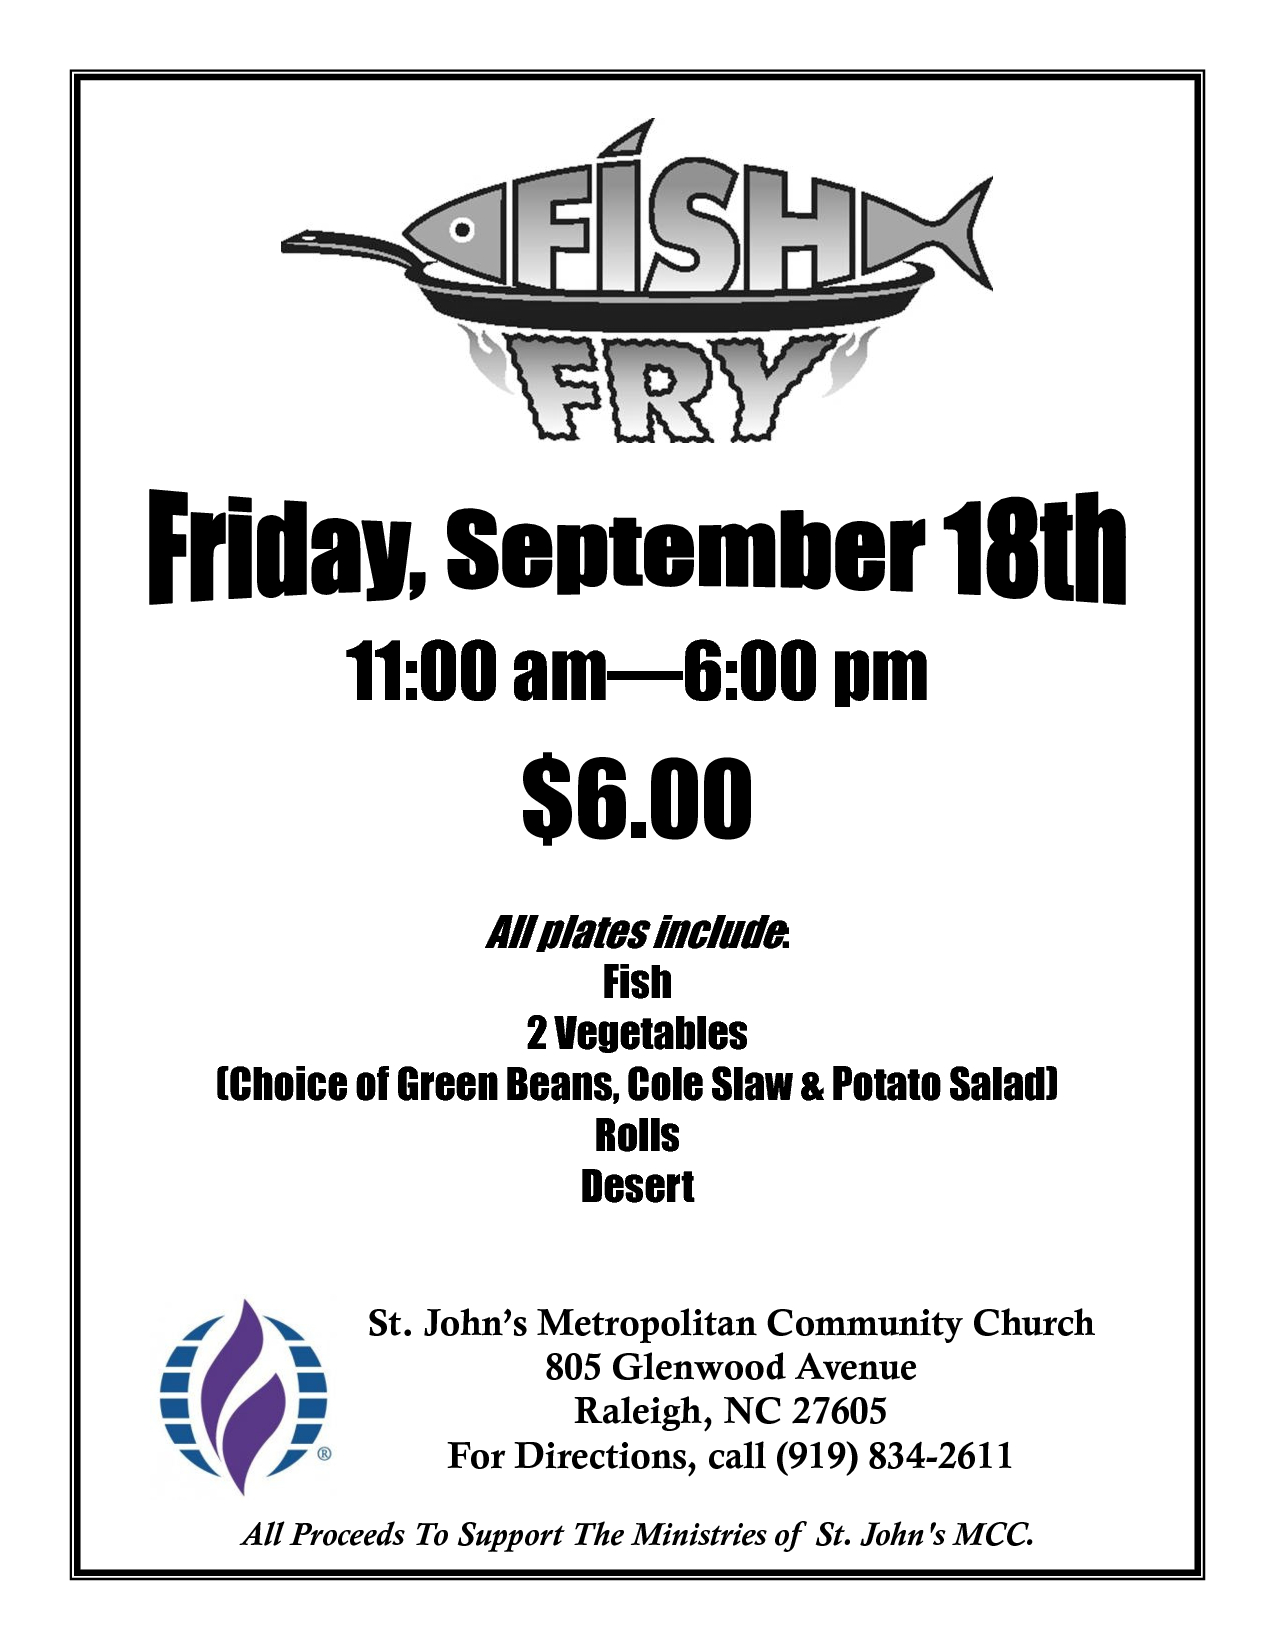 Free Fish-Fry Flyer Templates | Fish Fry Poster | Fish Fry | Fried - Free Printable Flyers For Church